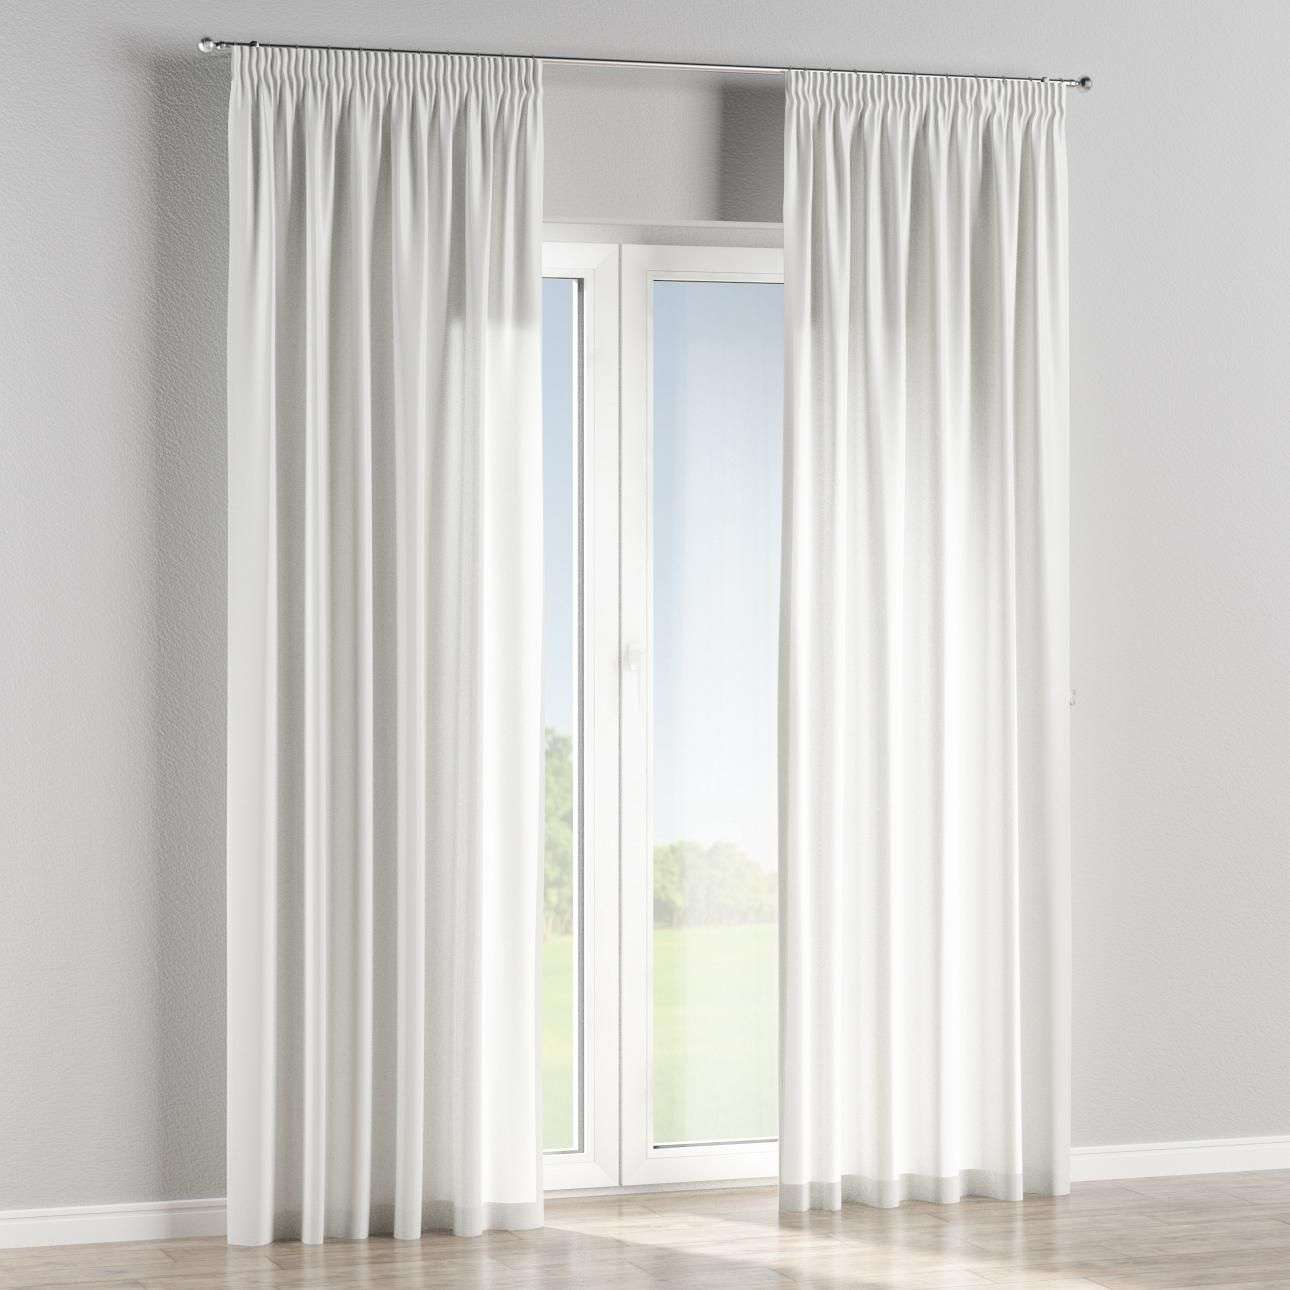 Pencil pleat curtains in collection Taffeta , fabric: 103-88